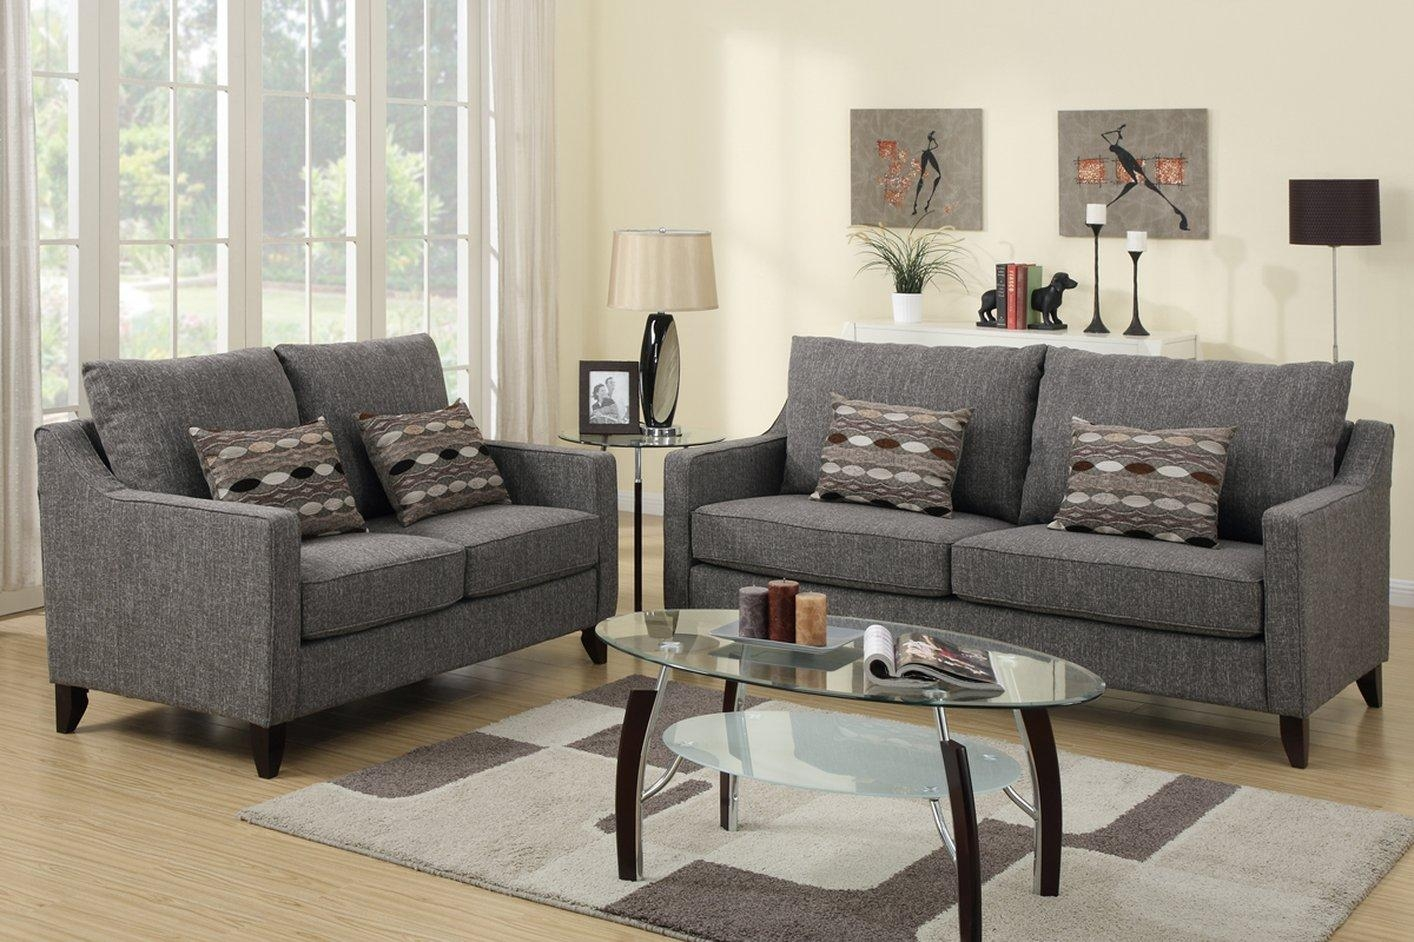 Avery Grey Fabric Sofa And Loveseat Set – Steal A Sofa Furniture Inside Sofa Loveseat And Chairs (Image 4 of 20)